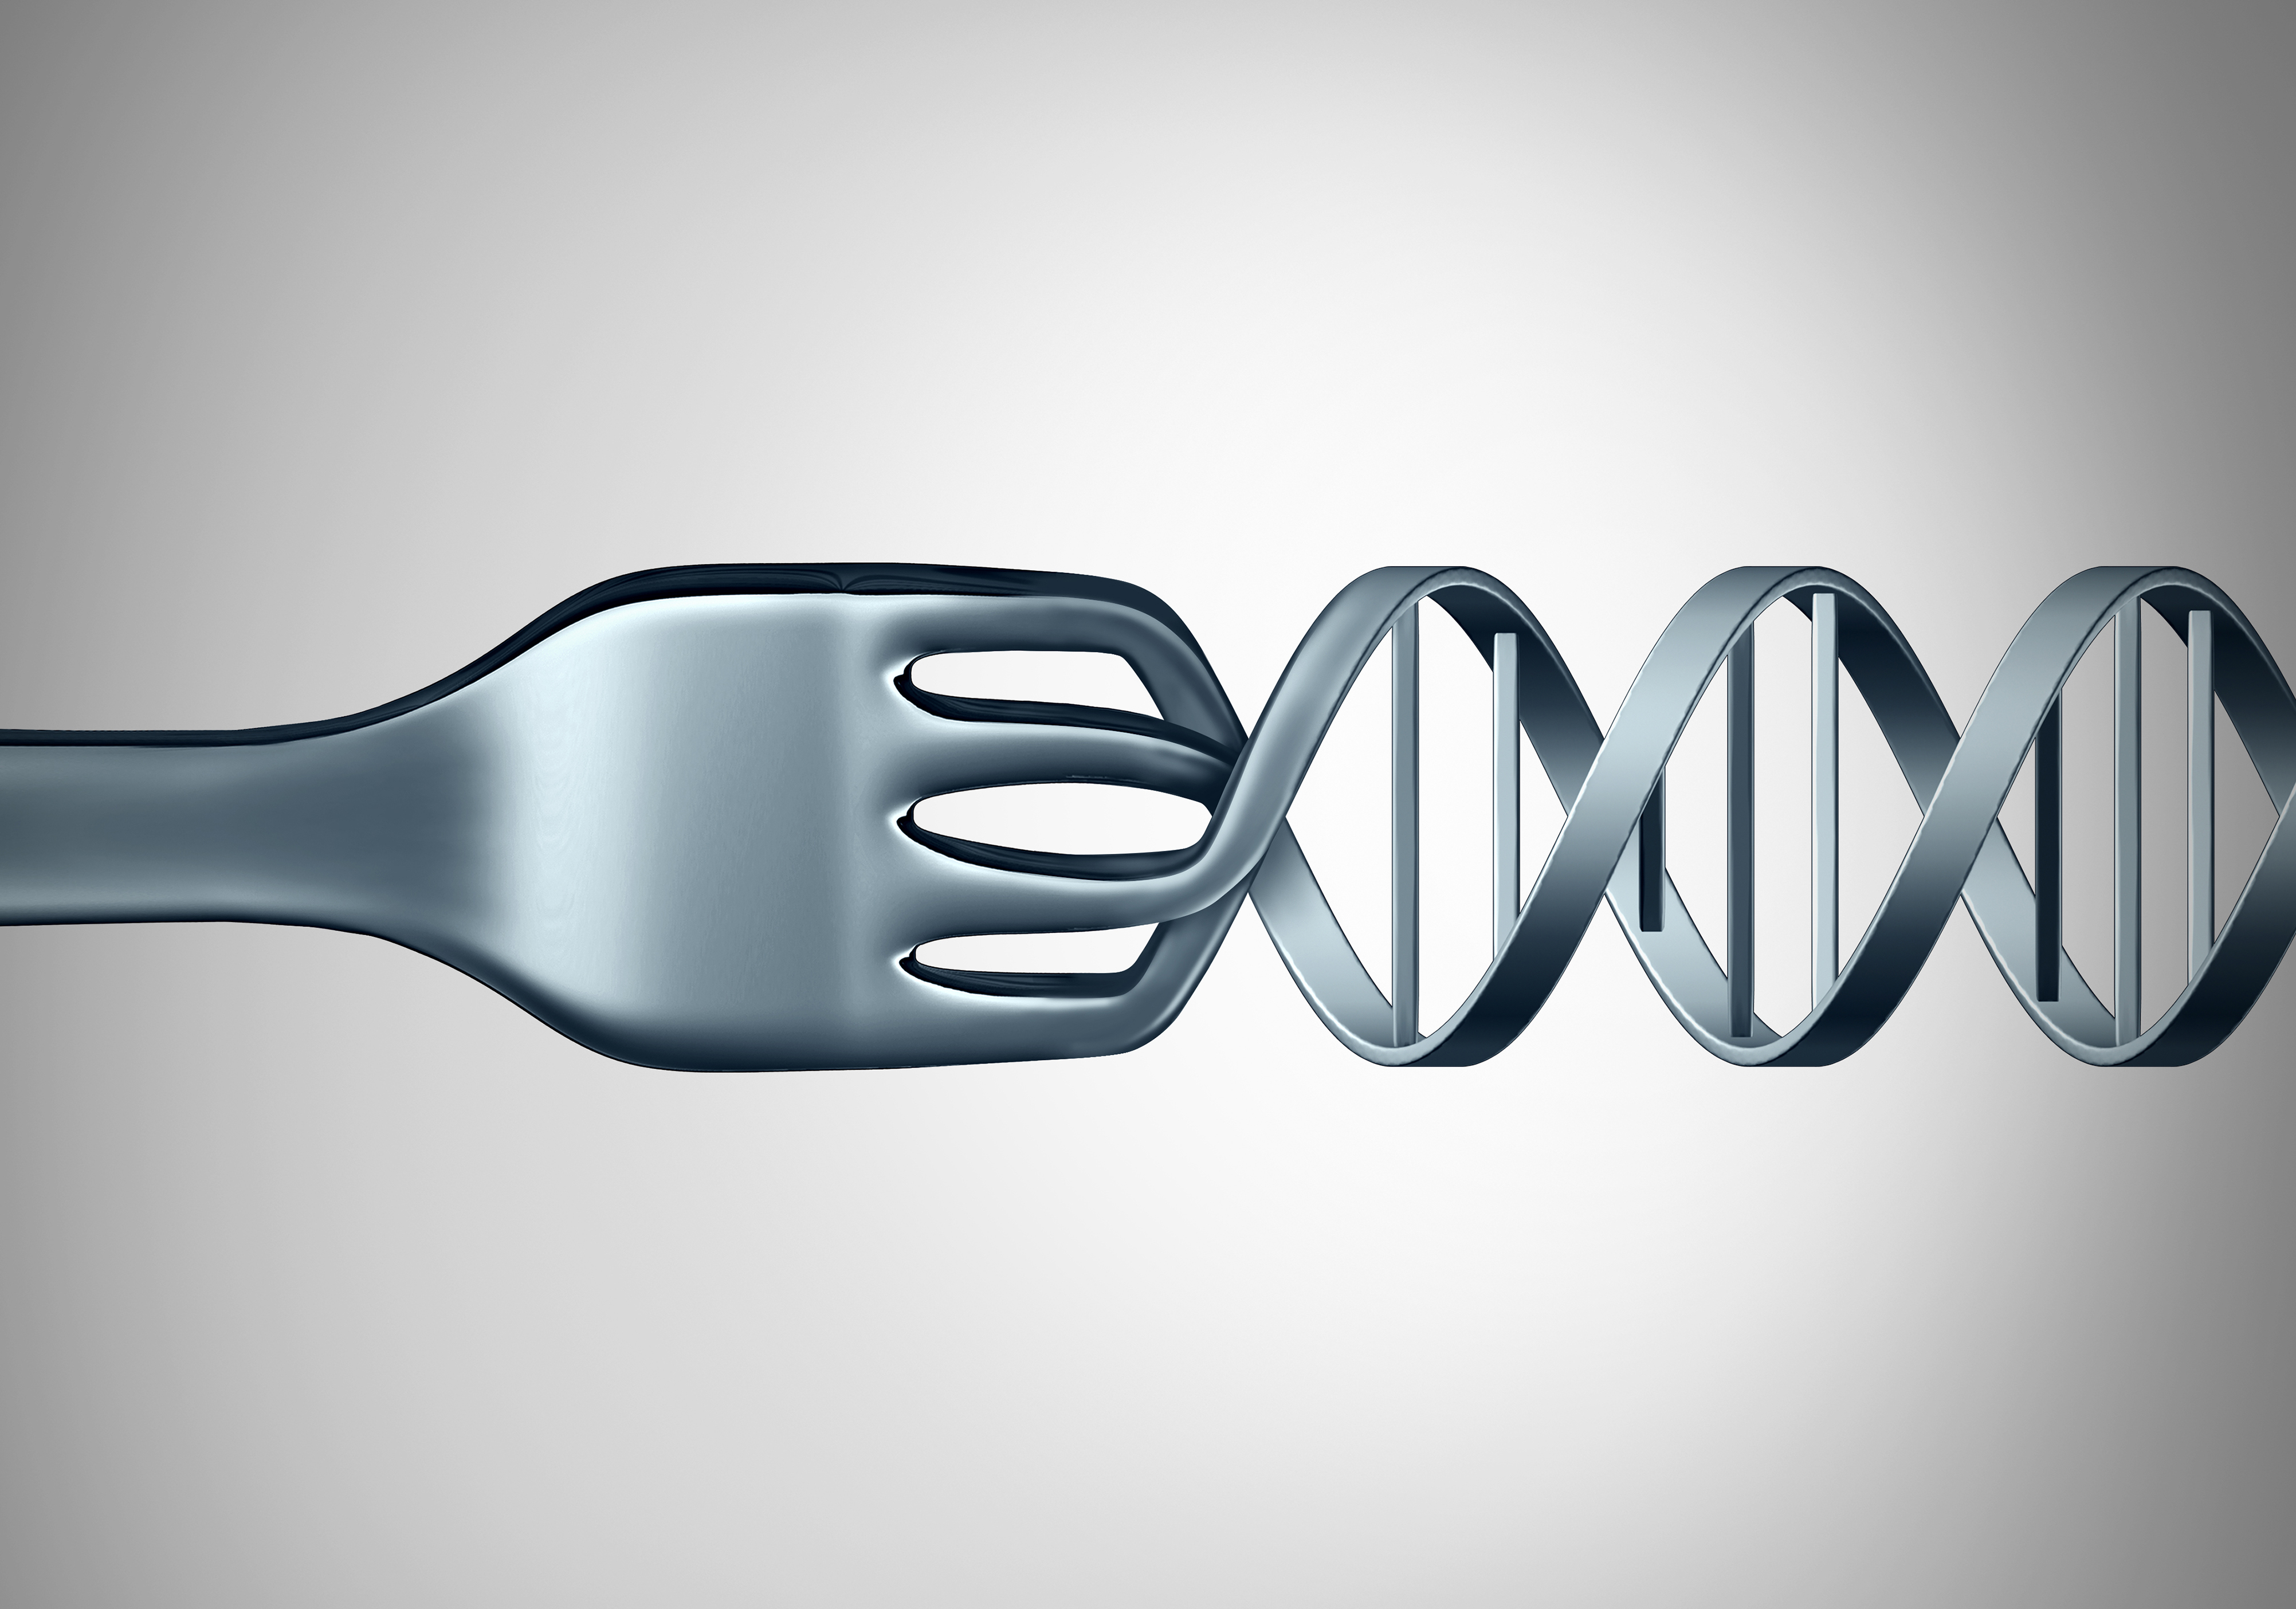 Researchers found that variations in certain genes play a significant role in a person's food choices and dietary habits. For example, higher chocolate intake and a larger waist size was associated with certain forms of the oxytocin receptor gene, and an obesity-associated gene played a role in vegetable and fiber intake. Other genes were involved in salt and fat intake. [wildpixel\Getty Images]